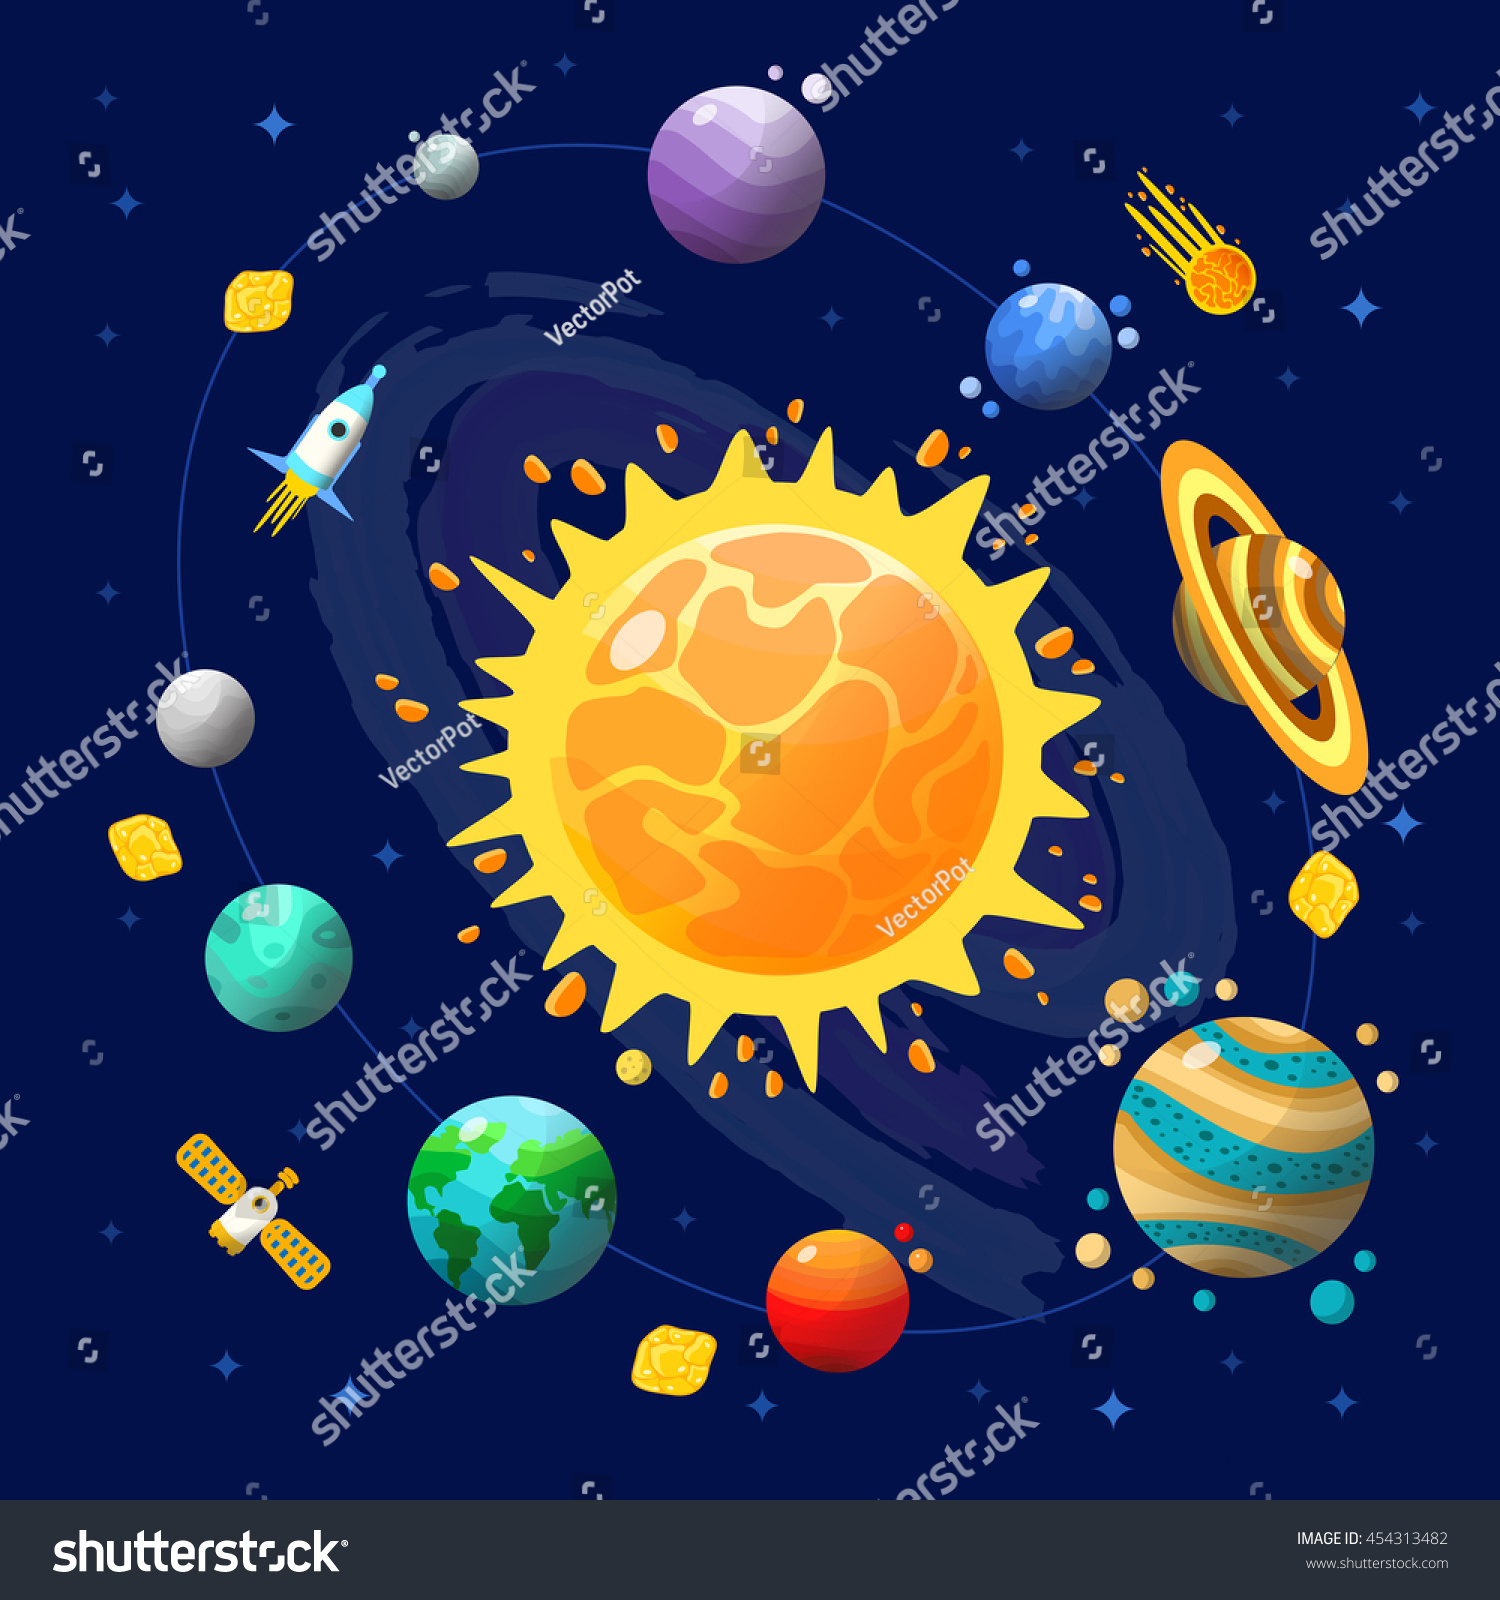 essay on composition of solar system Scientists believe that the solar system was formed when a cloud of gas and dust   planets in the solar nebula greatly affected their 1 size and 2 composition.